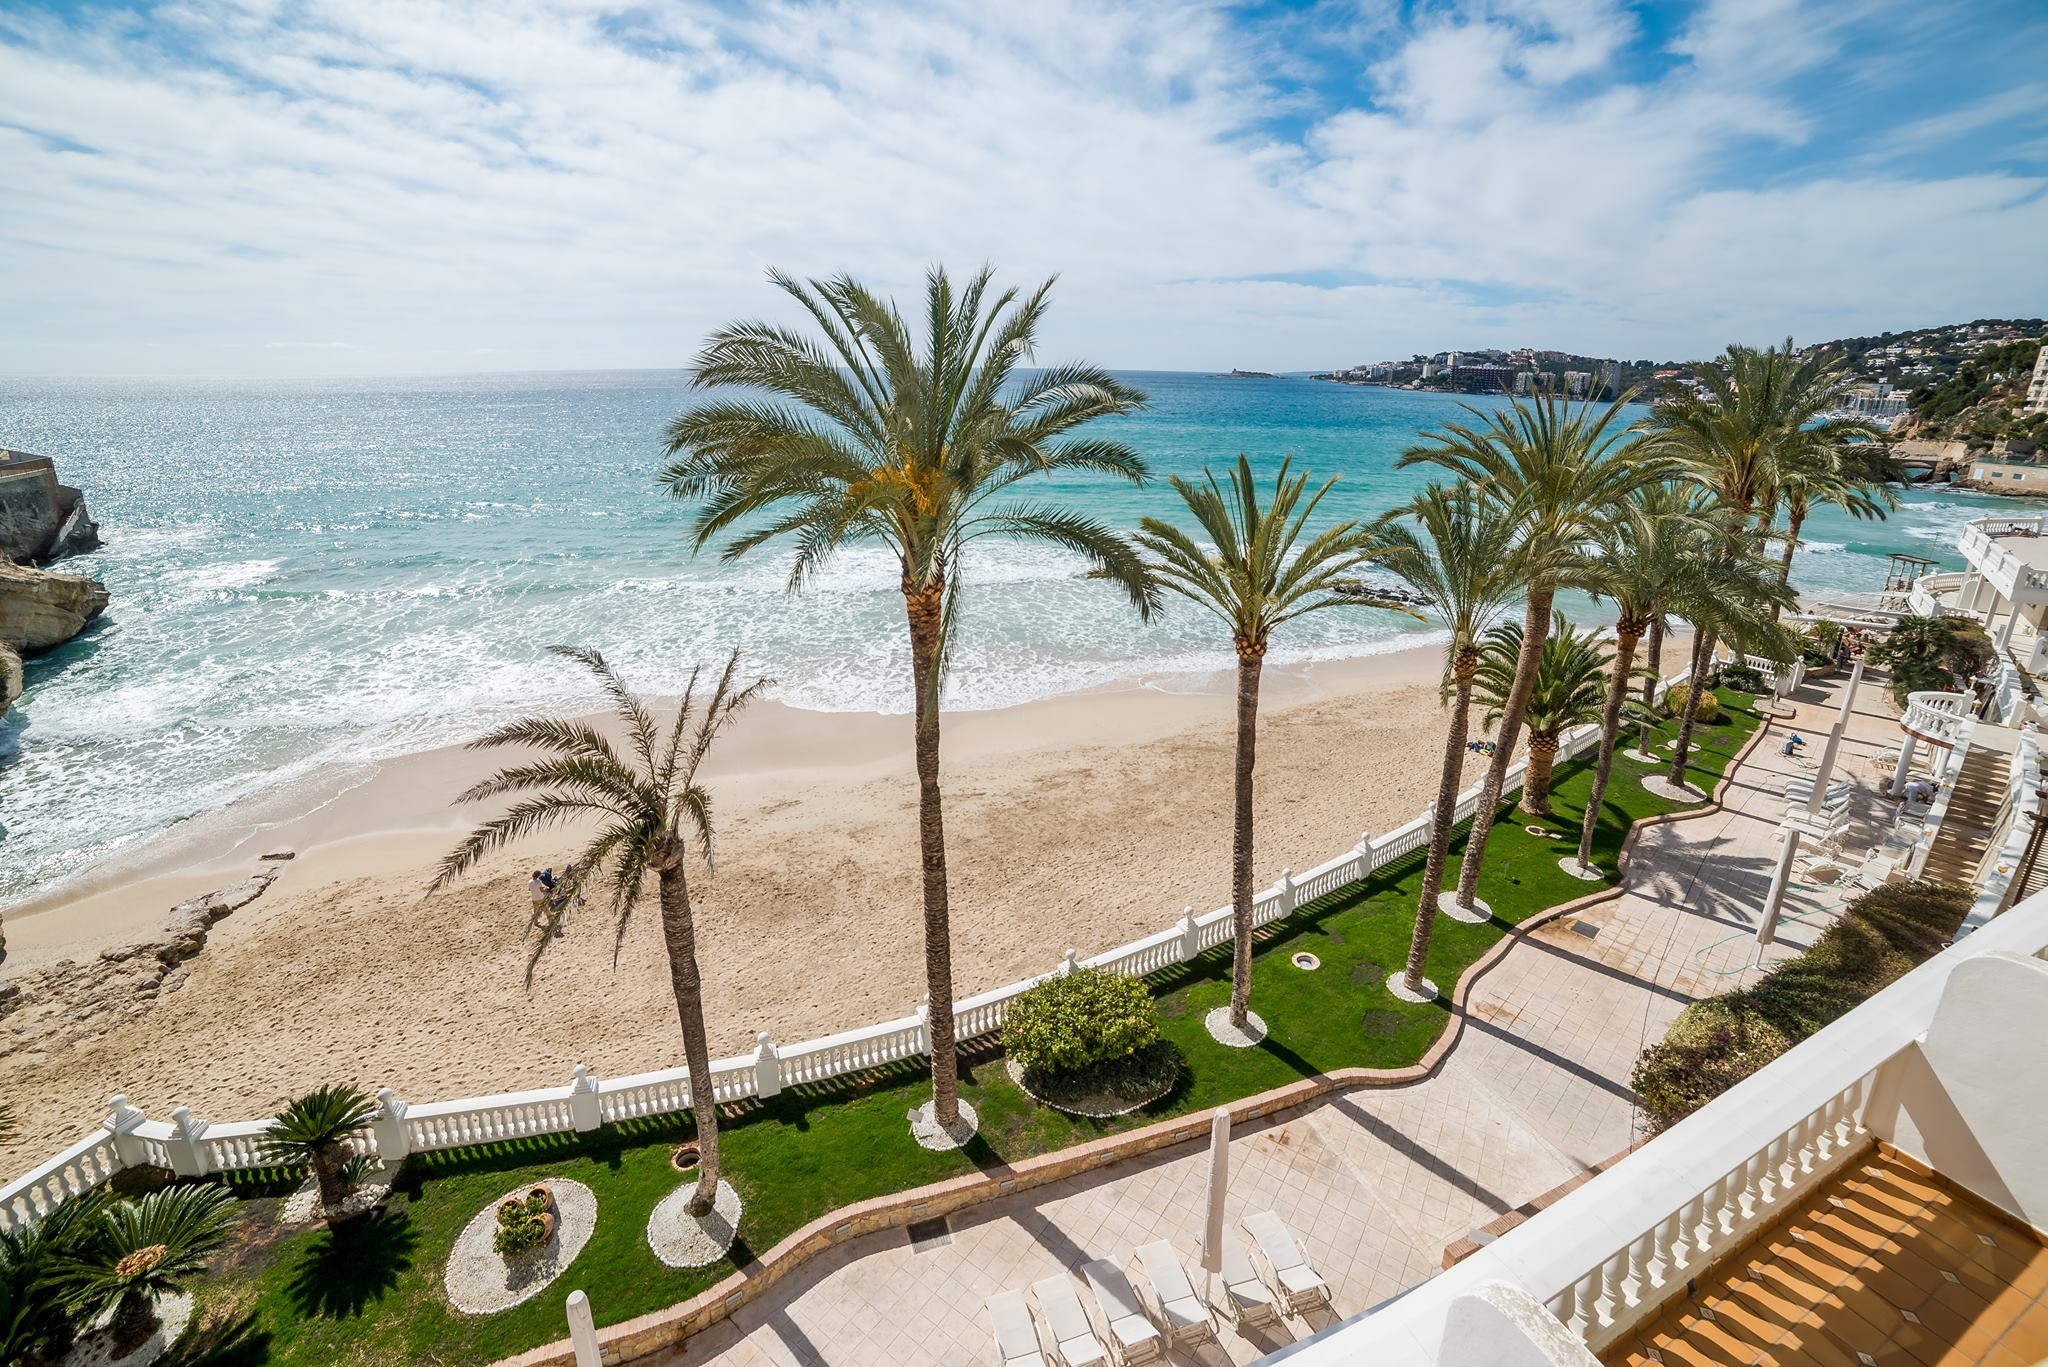 Daily Mail - Deal of the Week - Nixe Palace View out to the Med